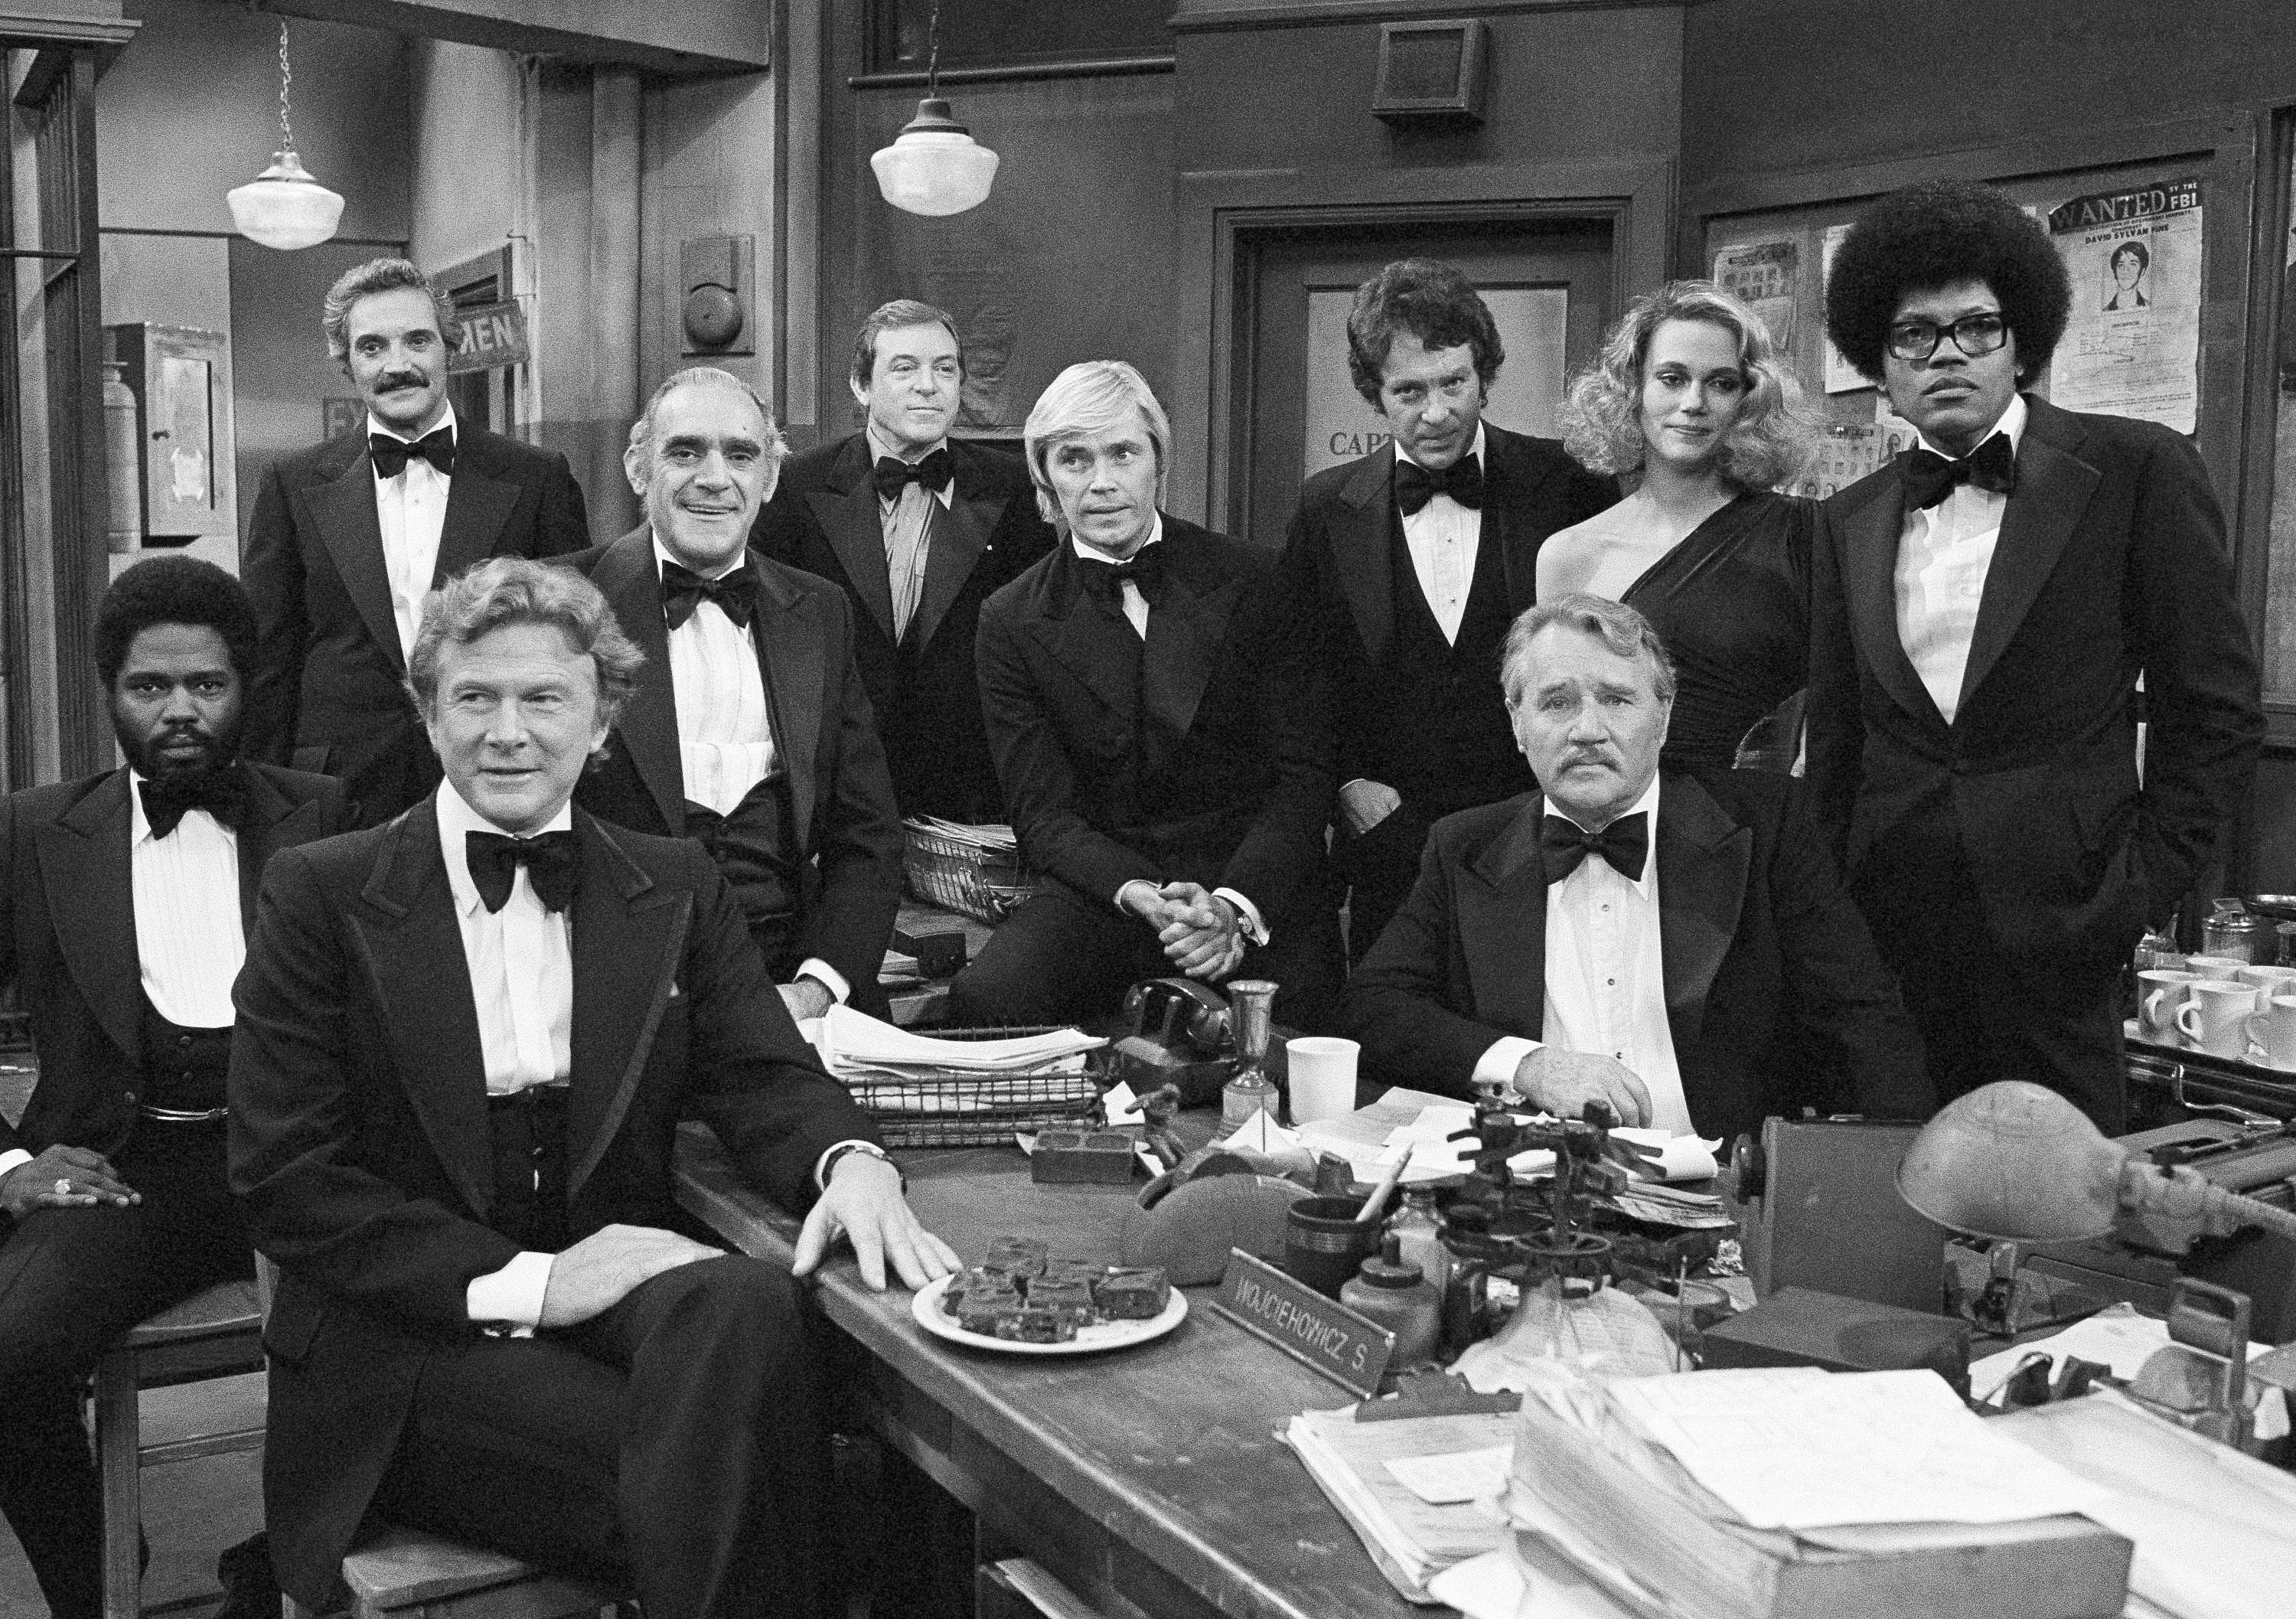 "FILE - In this Jan. 4, 1978 file photo, television star's from ABC's law enforcement theme shows gather on the set for the taping of ABC's Silver Anniversary Celebration in Los Angeles. The actors from left, George Stanford Brown, ""The Rookies""; Hal Linden, ""Barney Miller""; Steve Forrest, ""Swat"" Abe Vigoda, ""Fish""; Paul Burke, ""Naked City""; Dennis Cole, ""Felony Squad""; Michael Cole, Peggy Lipton, Clarence Williams III, ""The Mod Squad"" and Howard Duff, ""Felony Squad."" Lipton, a star of the groundbreaking late 1960s TV show ""The Mod Squad"" and the 1990s show ""Twin Peaks,"" has died of cancer at age 72. Lipton's daughters Rashida and Kidada Jones say in a statement that Lipton died Saturday, May 11, 2019, surrounded by her family. (AP Photo/Wally Fong, File)"